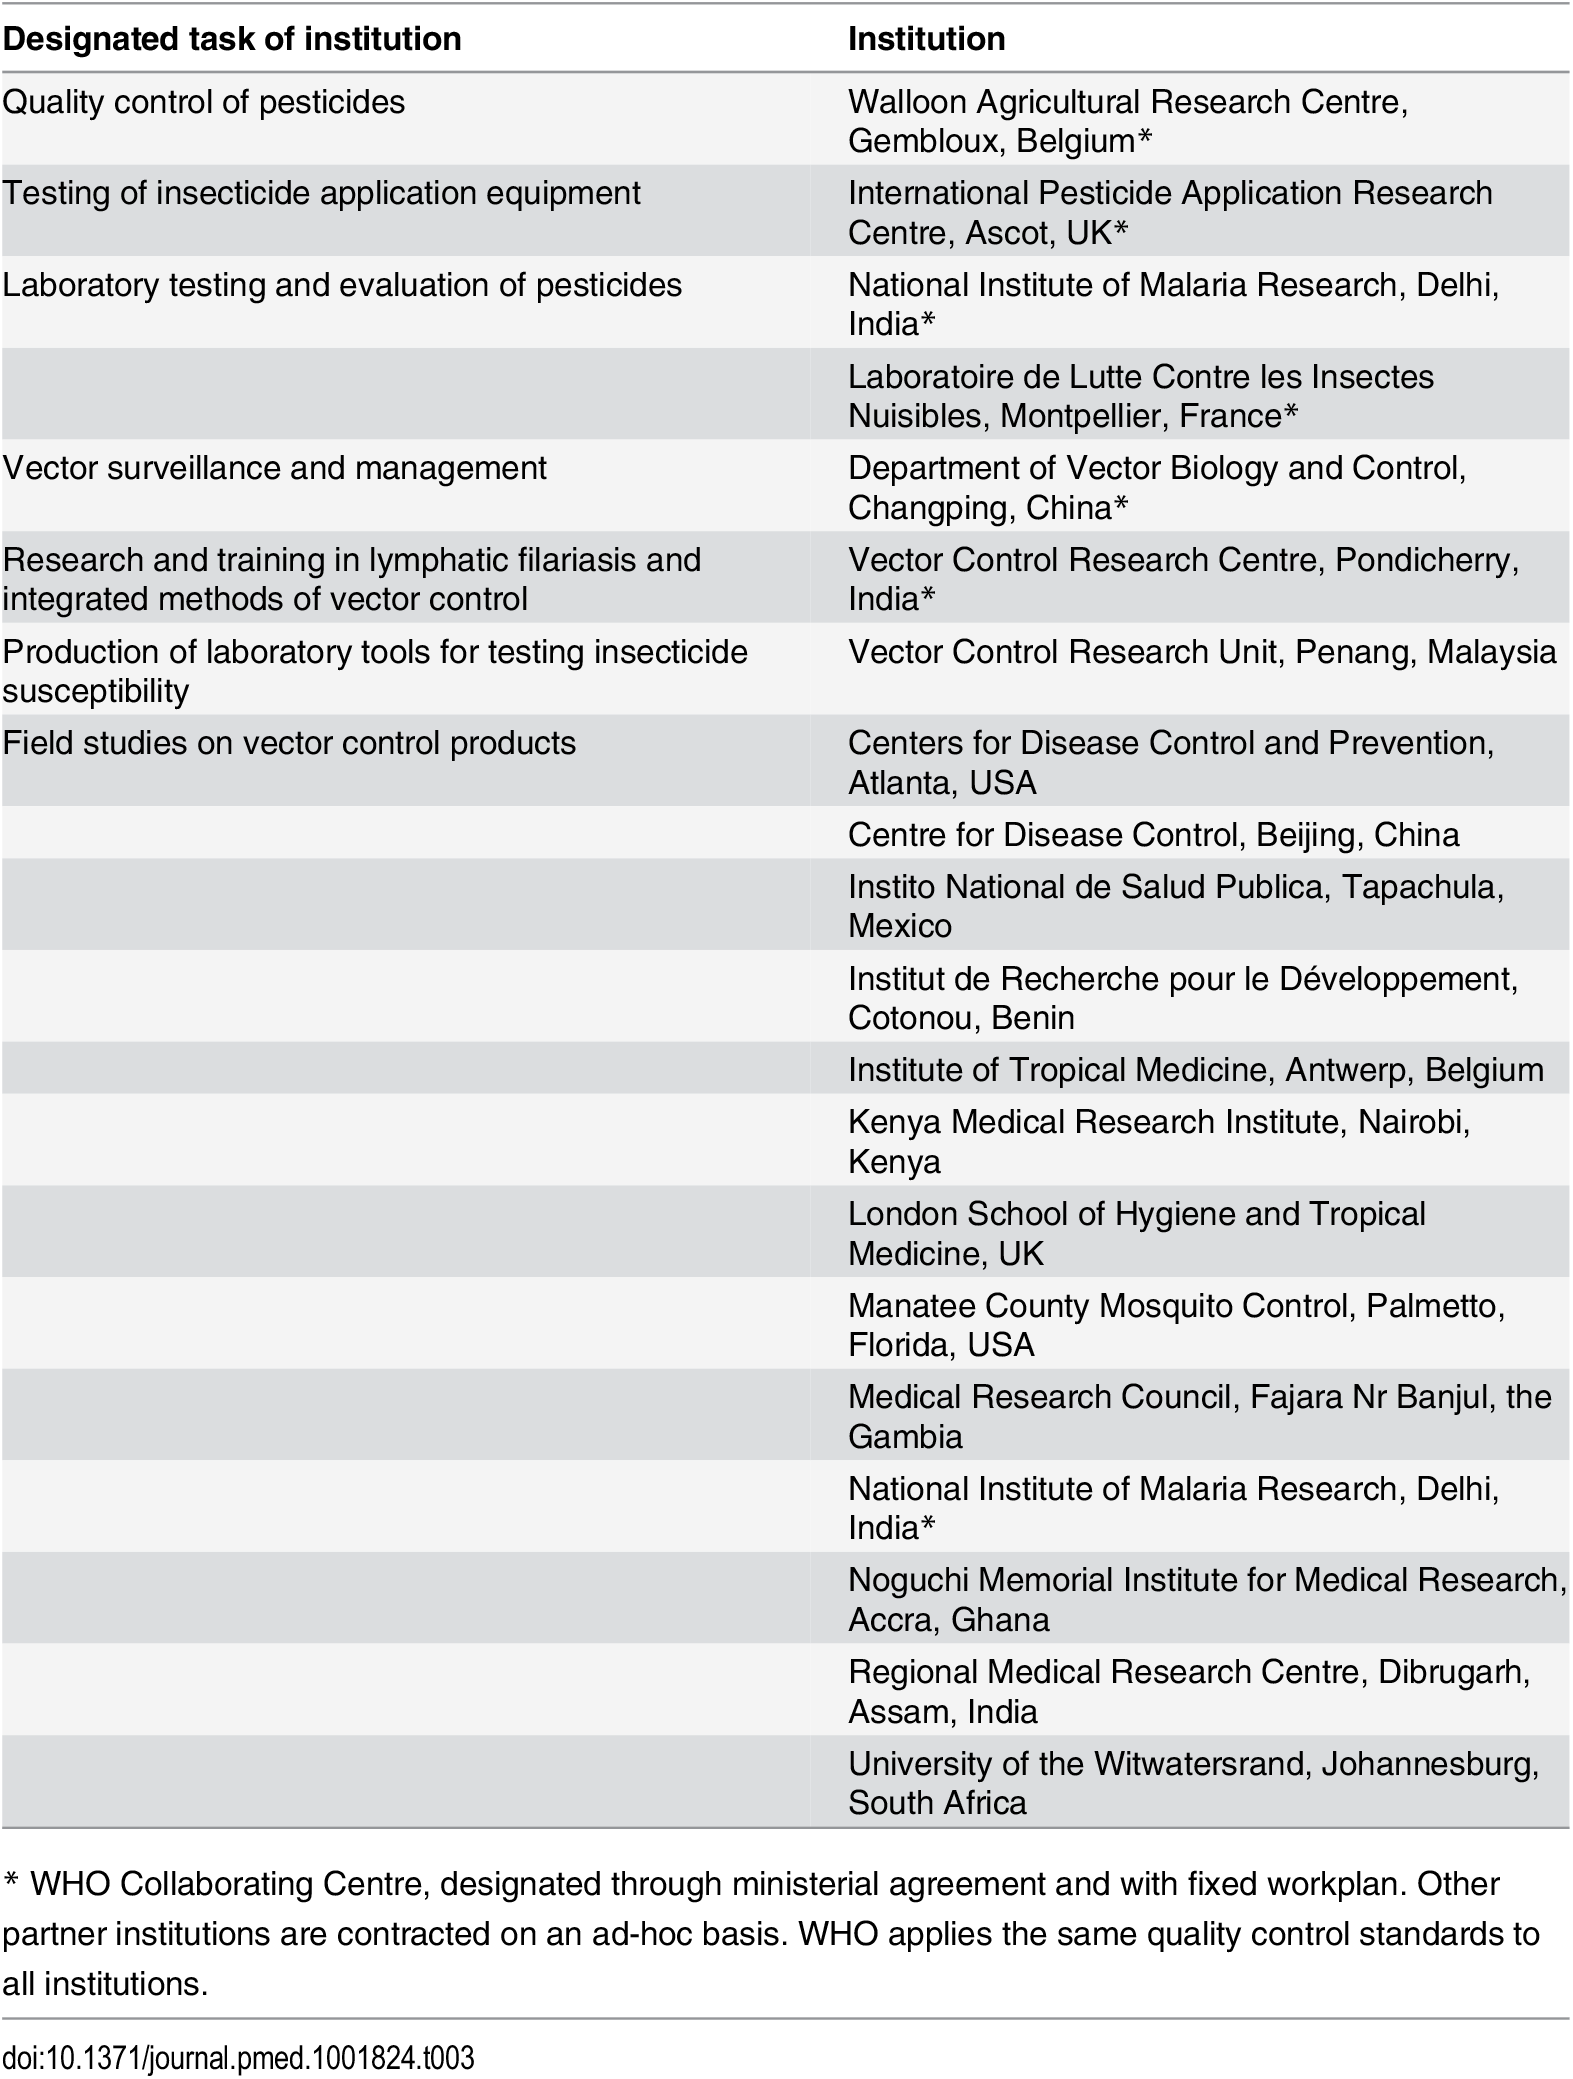 Designated tasks in the WHOPES global network of institutions [<em class=&quot;ref&quot;>27</em>].